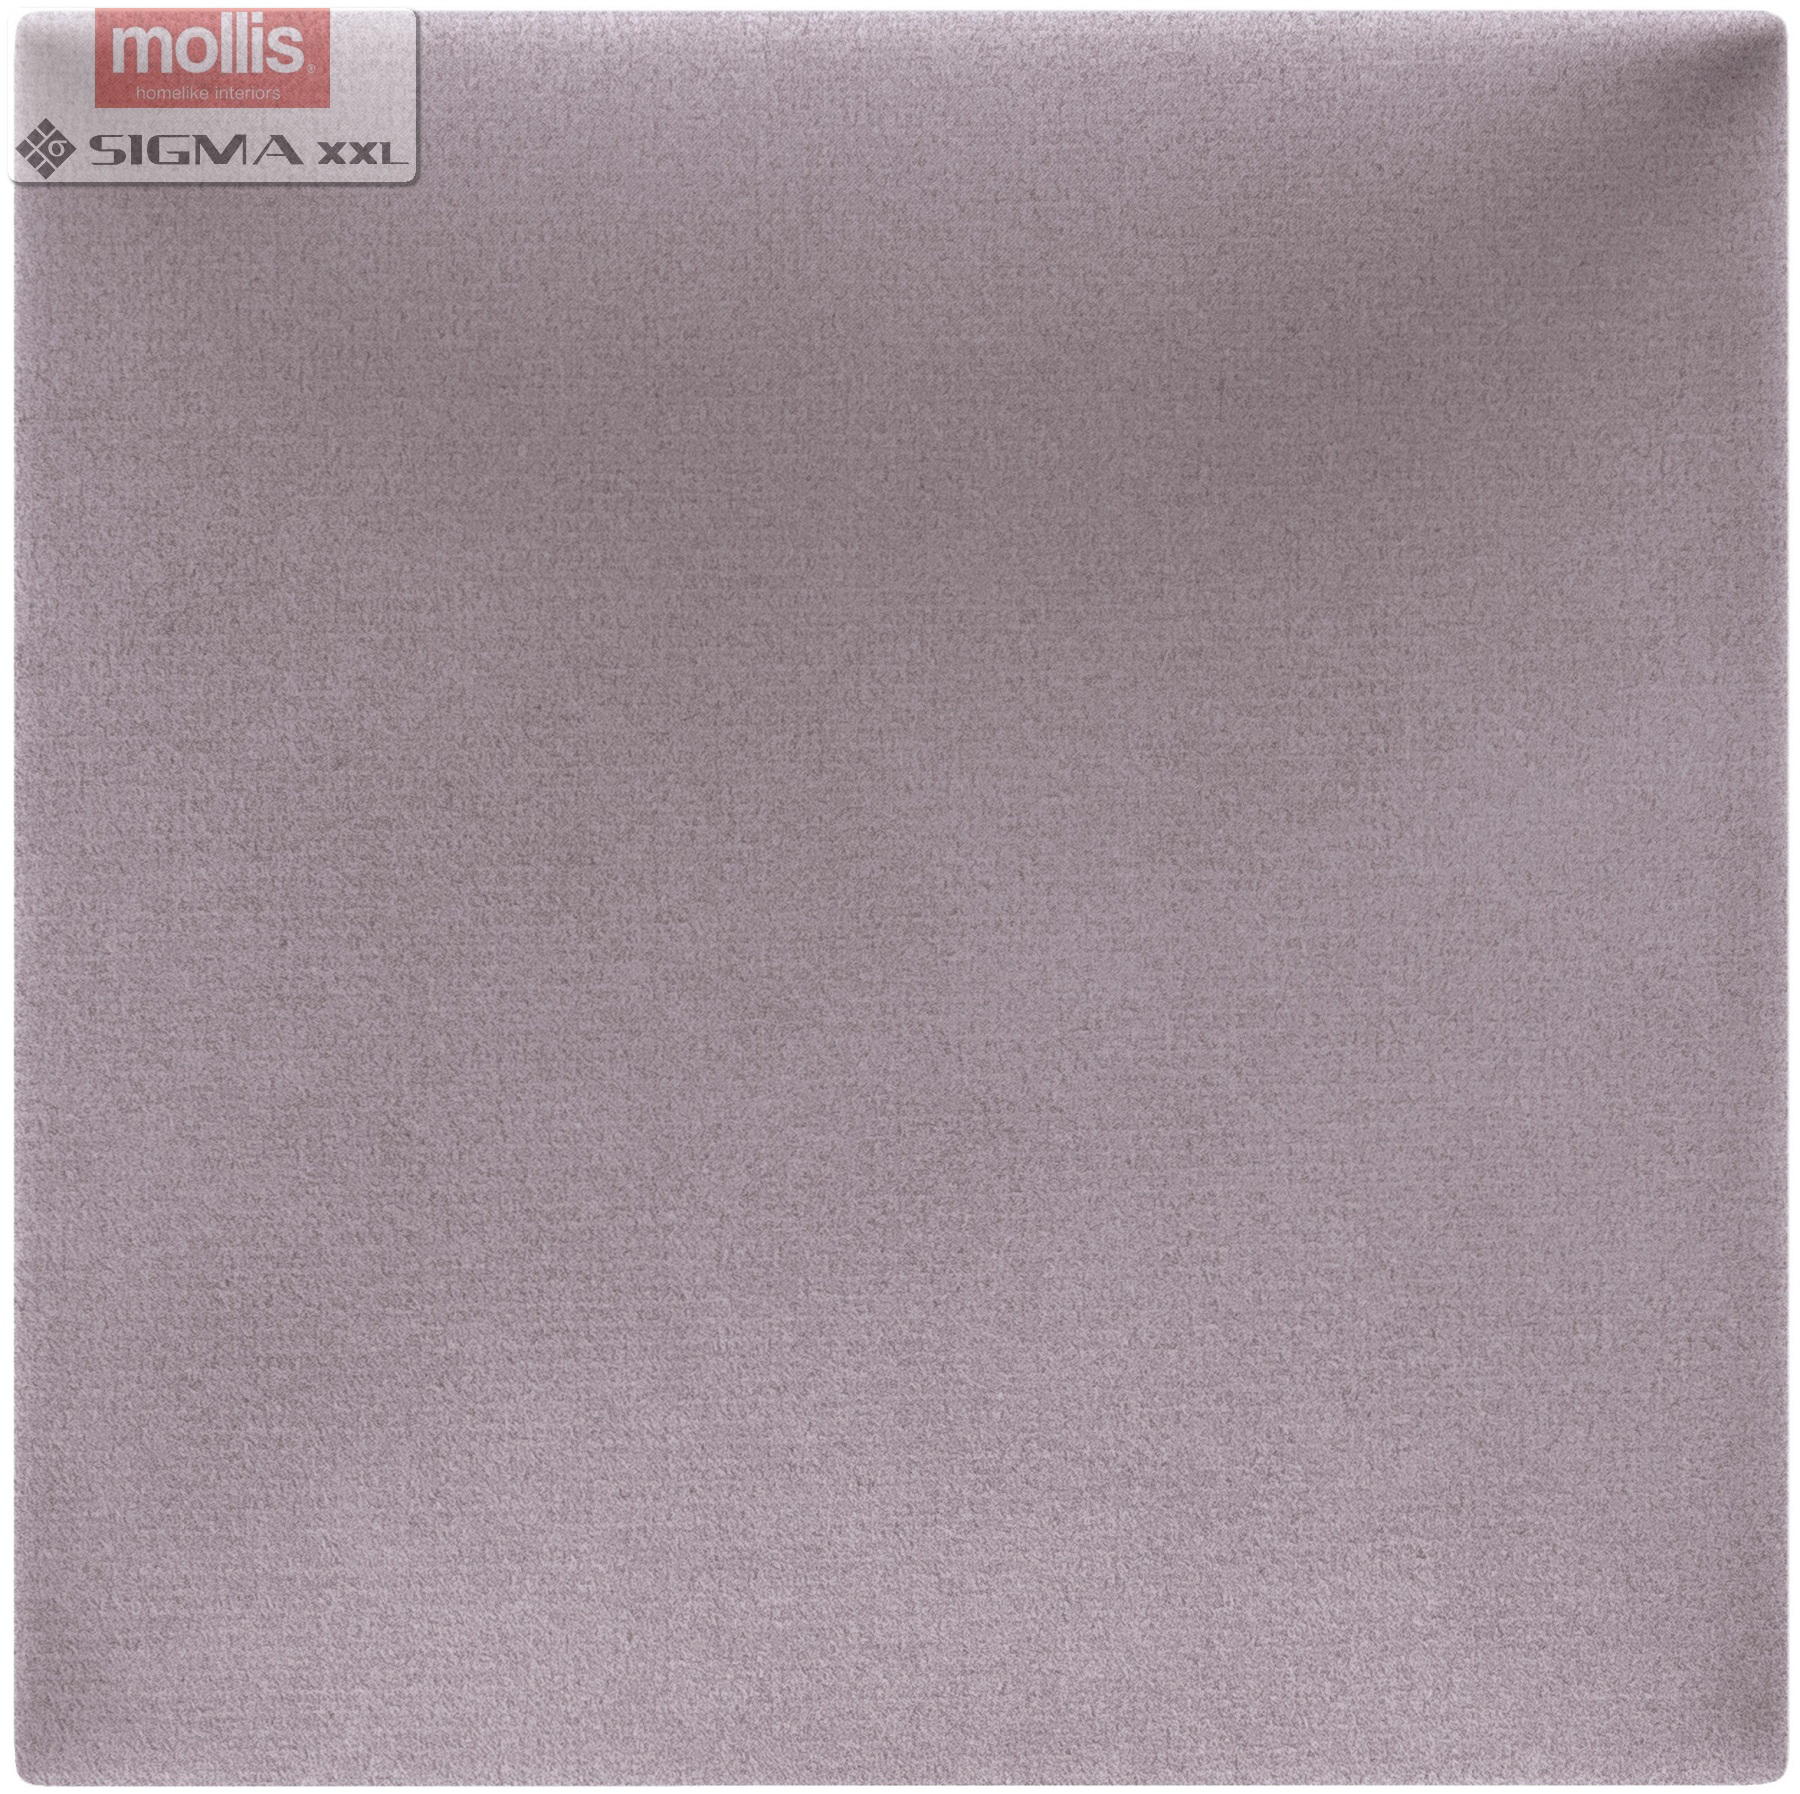 Imagine Mollis Basic 02 Lavender (Patrat - 30x30 cm)